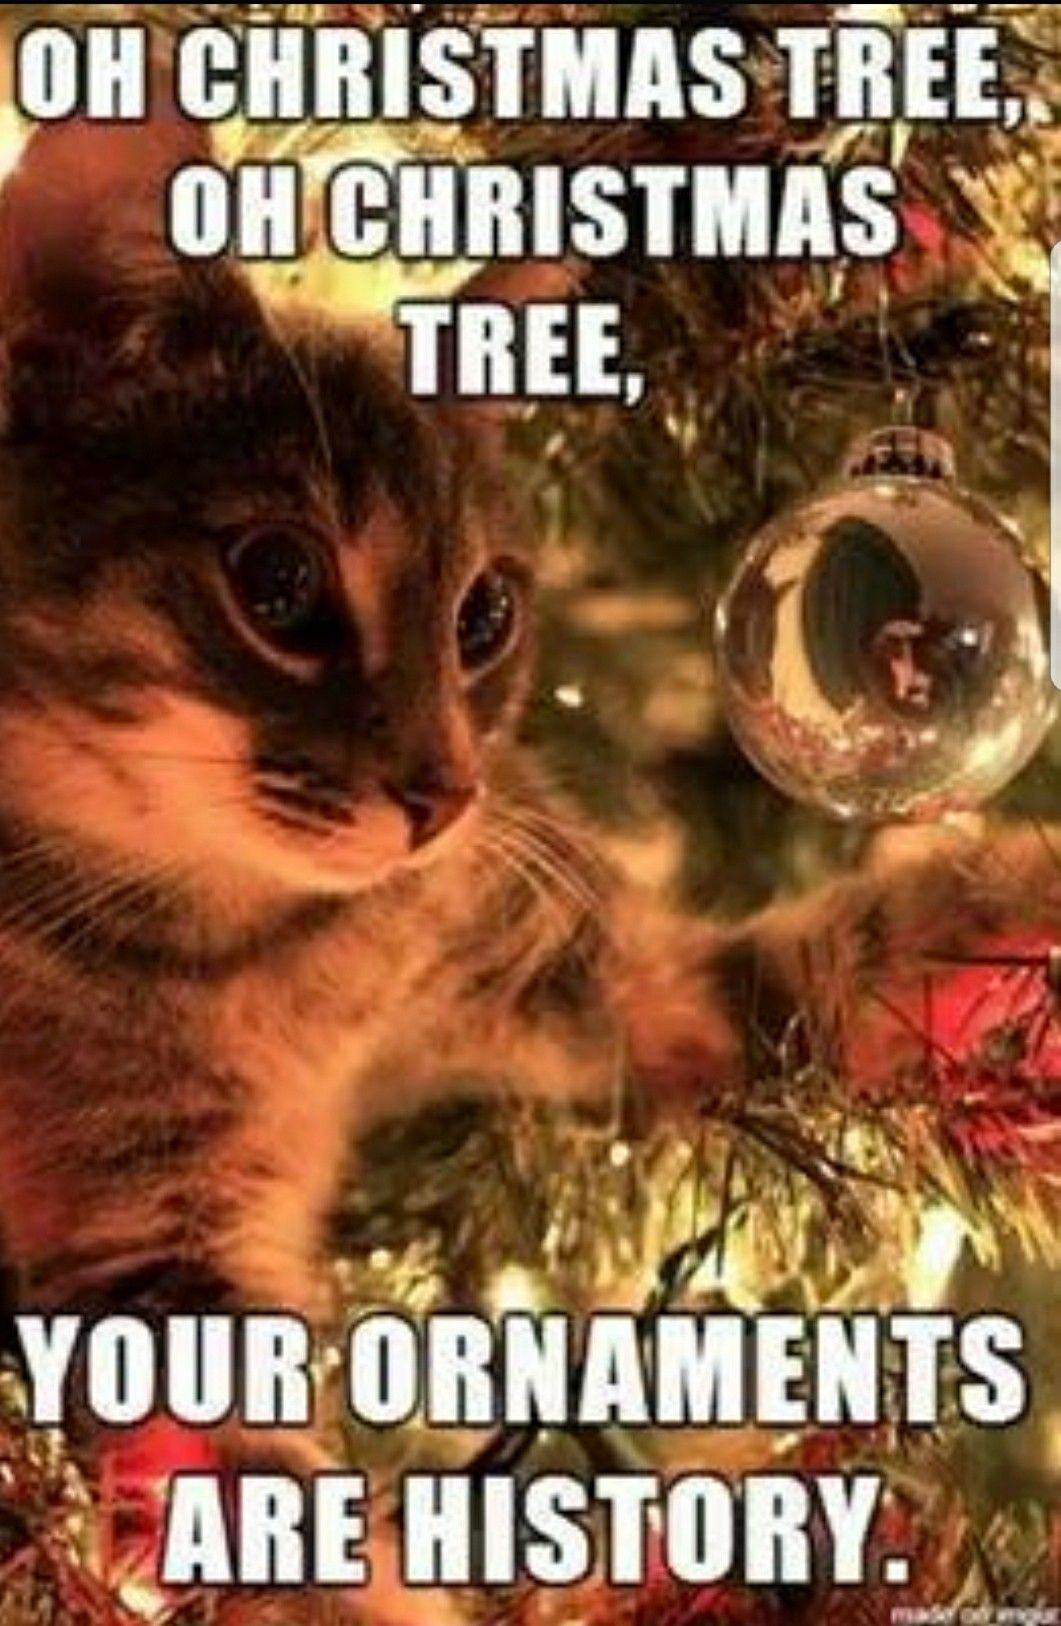 21 Hilarious Christmas Memes You Need In Your Life